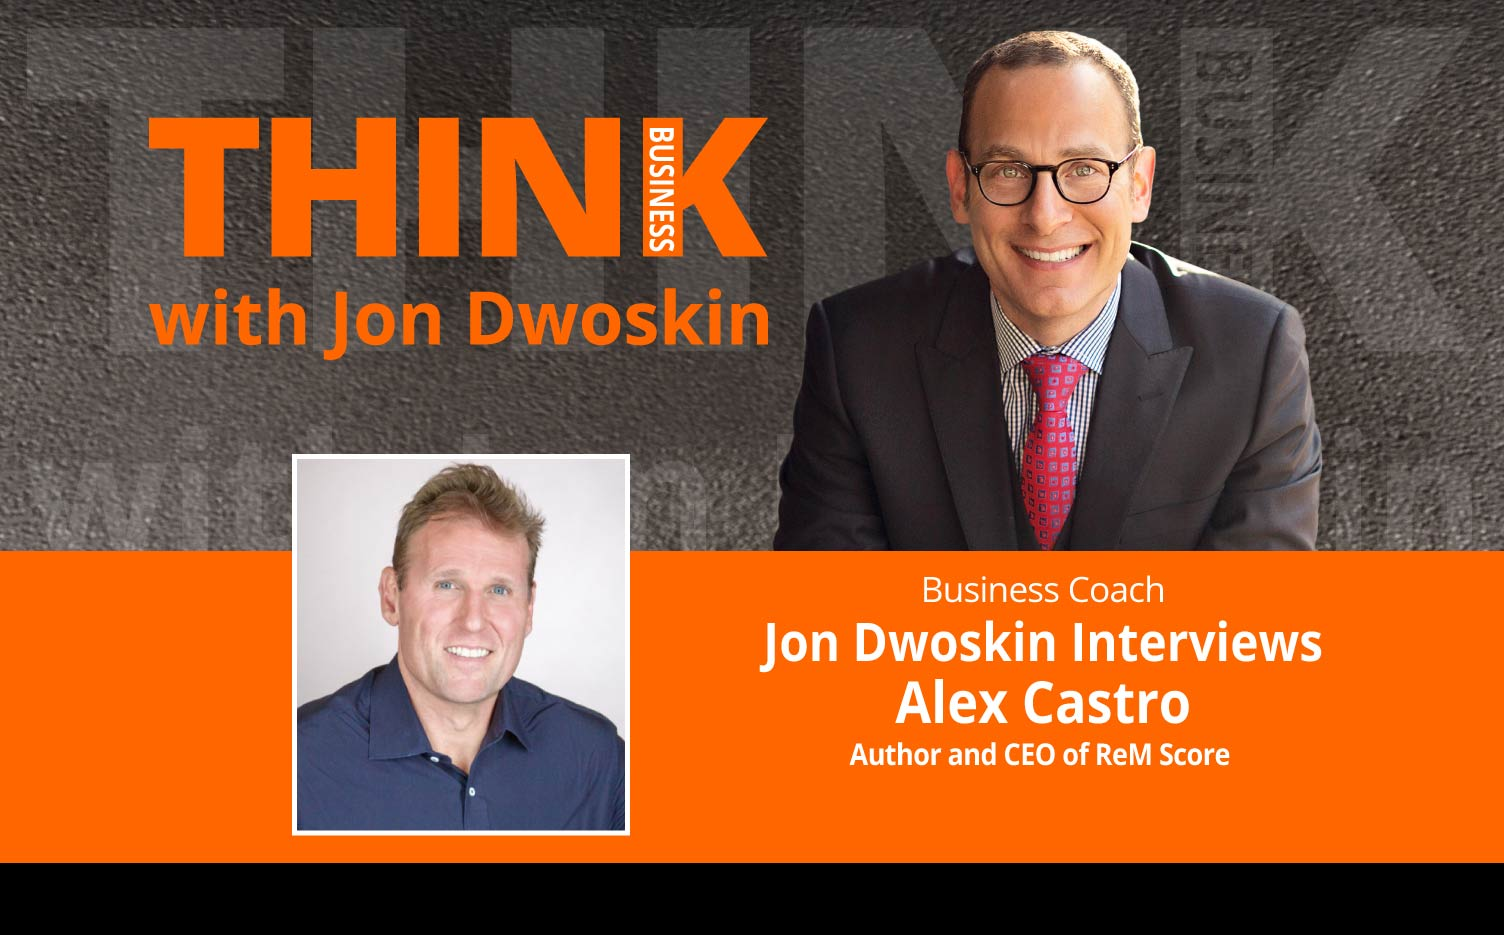 THINK Business Podcast: Jon Dwoskin Interviews  Alex Castro, Author and CEO of ReM Score